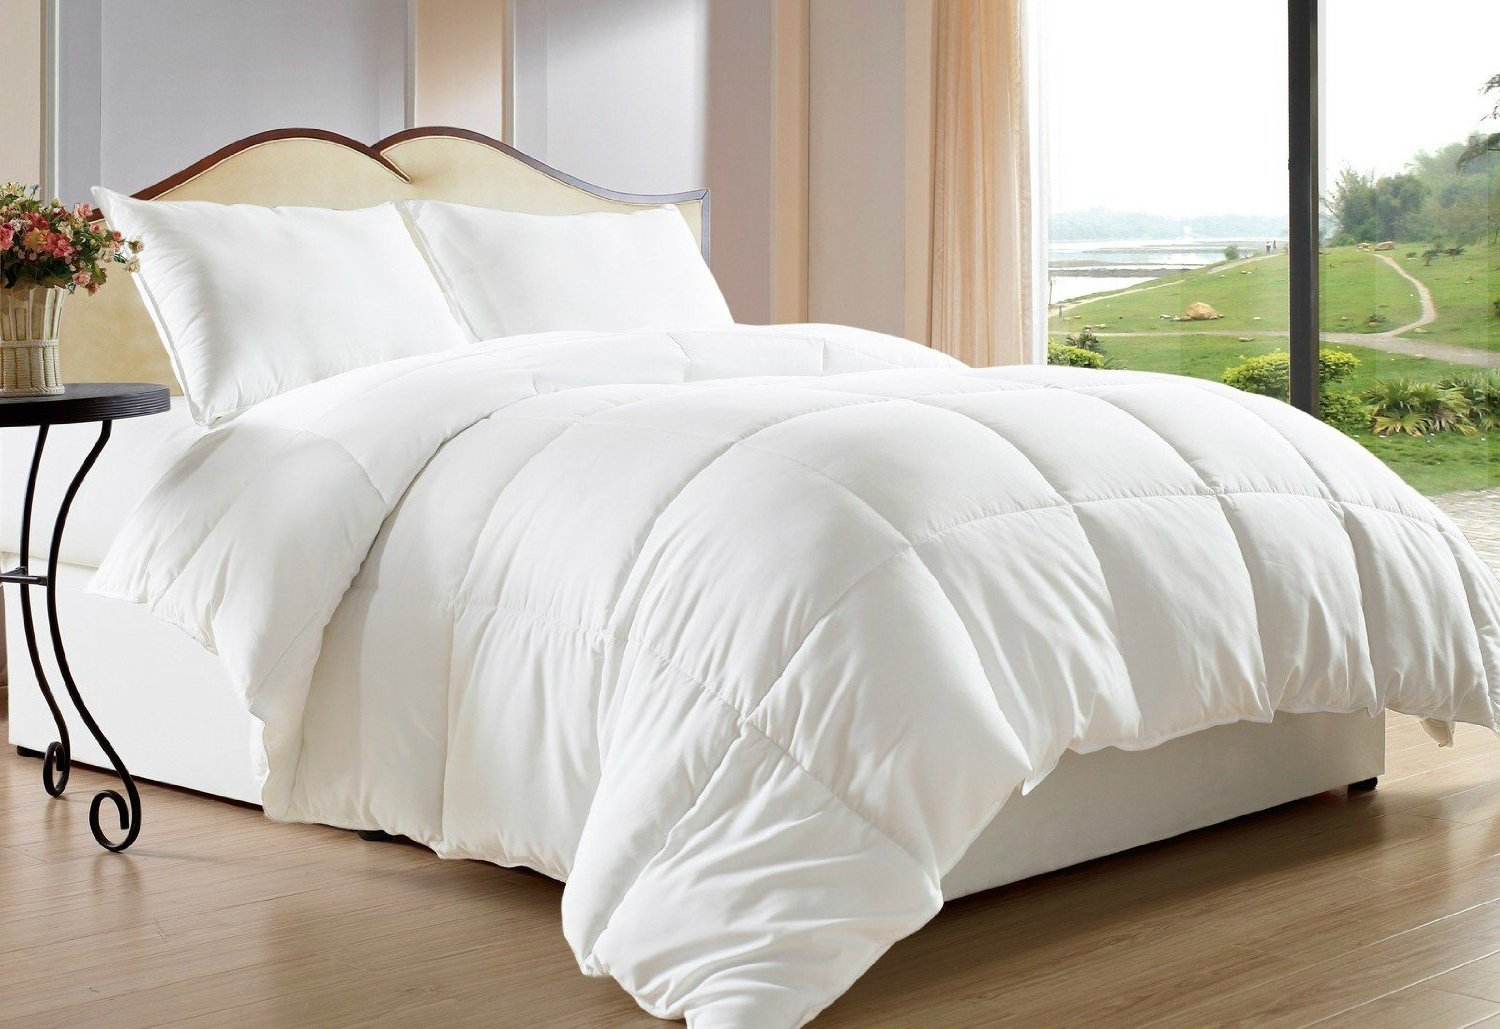 Amazon.com: King Size Comforter Goose Down Duvet  White, Hypoallergenic  Alternative, Box Stitched, Protects Against Dust Mites And Allergens,  Washable, ...